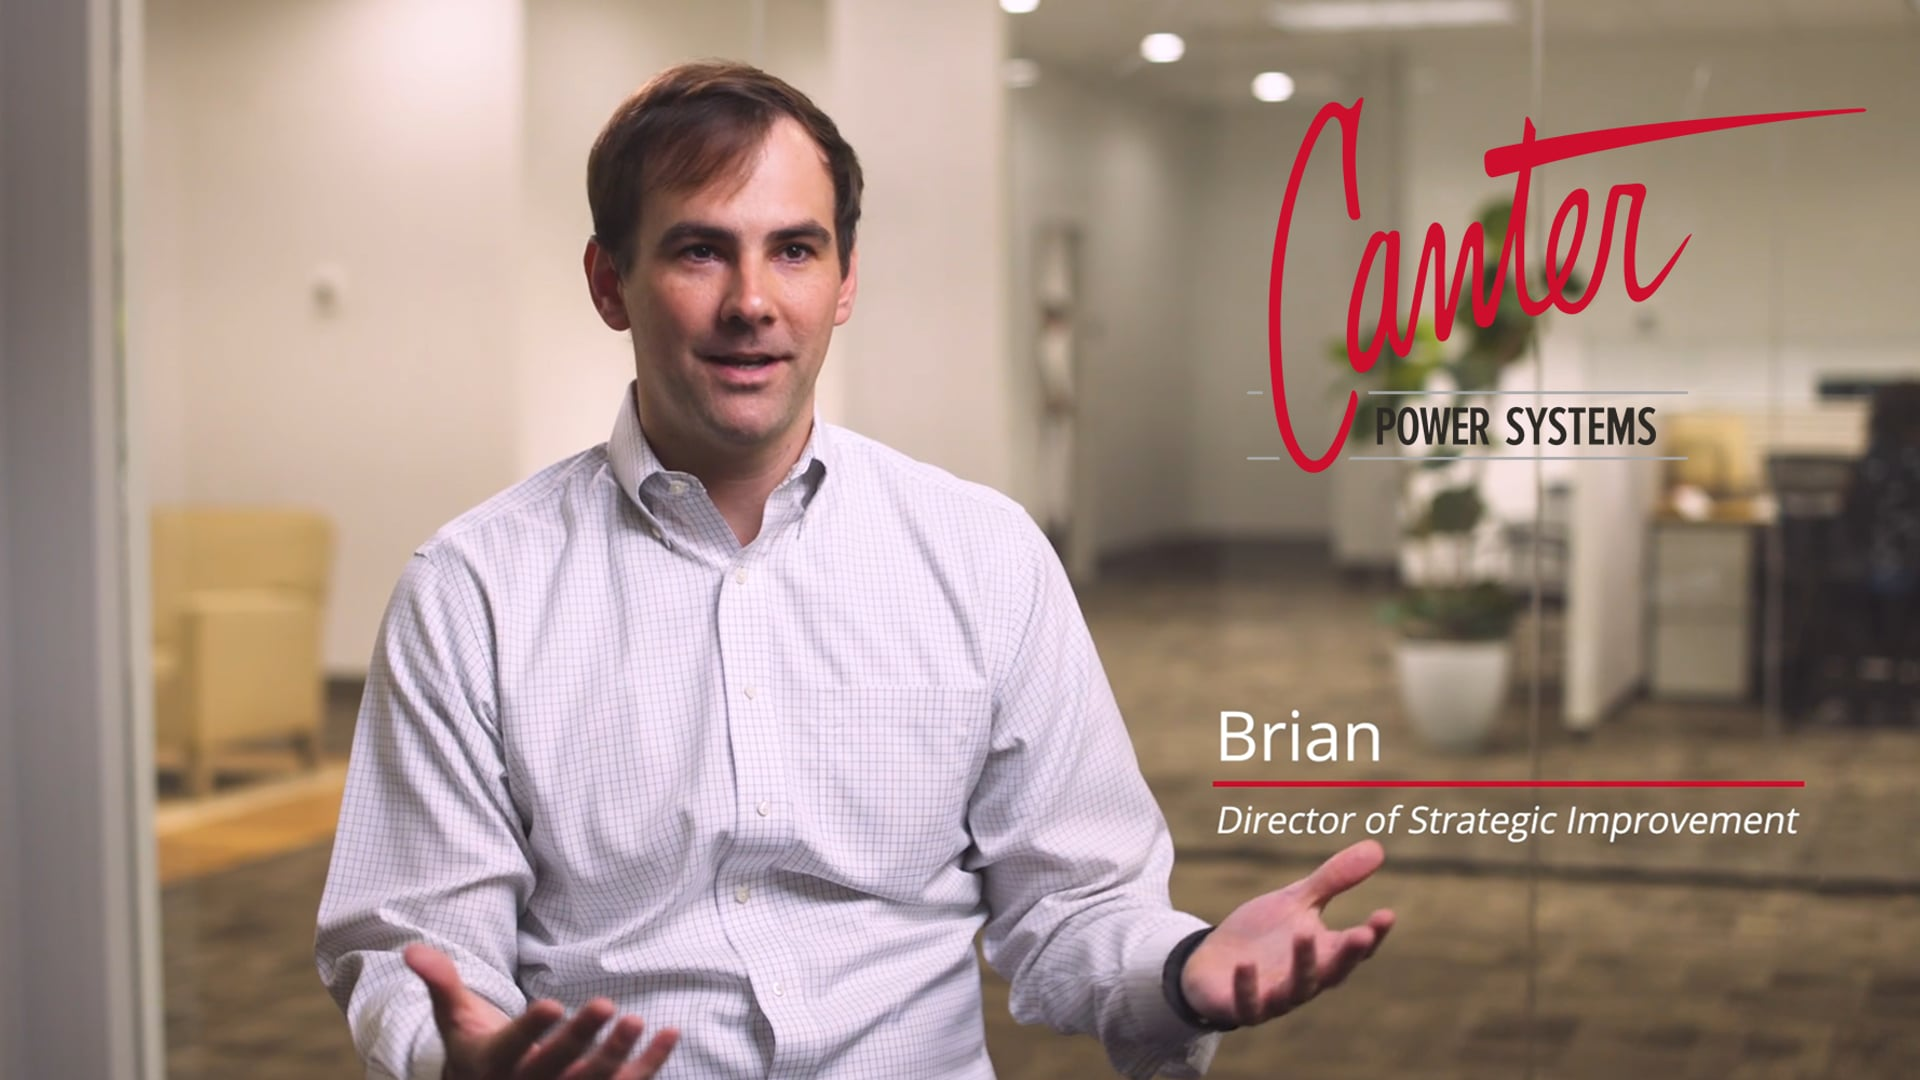 Canter Power Systems Virtual Processes